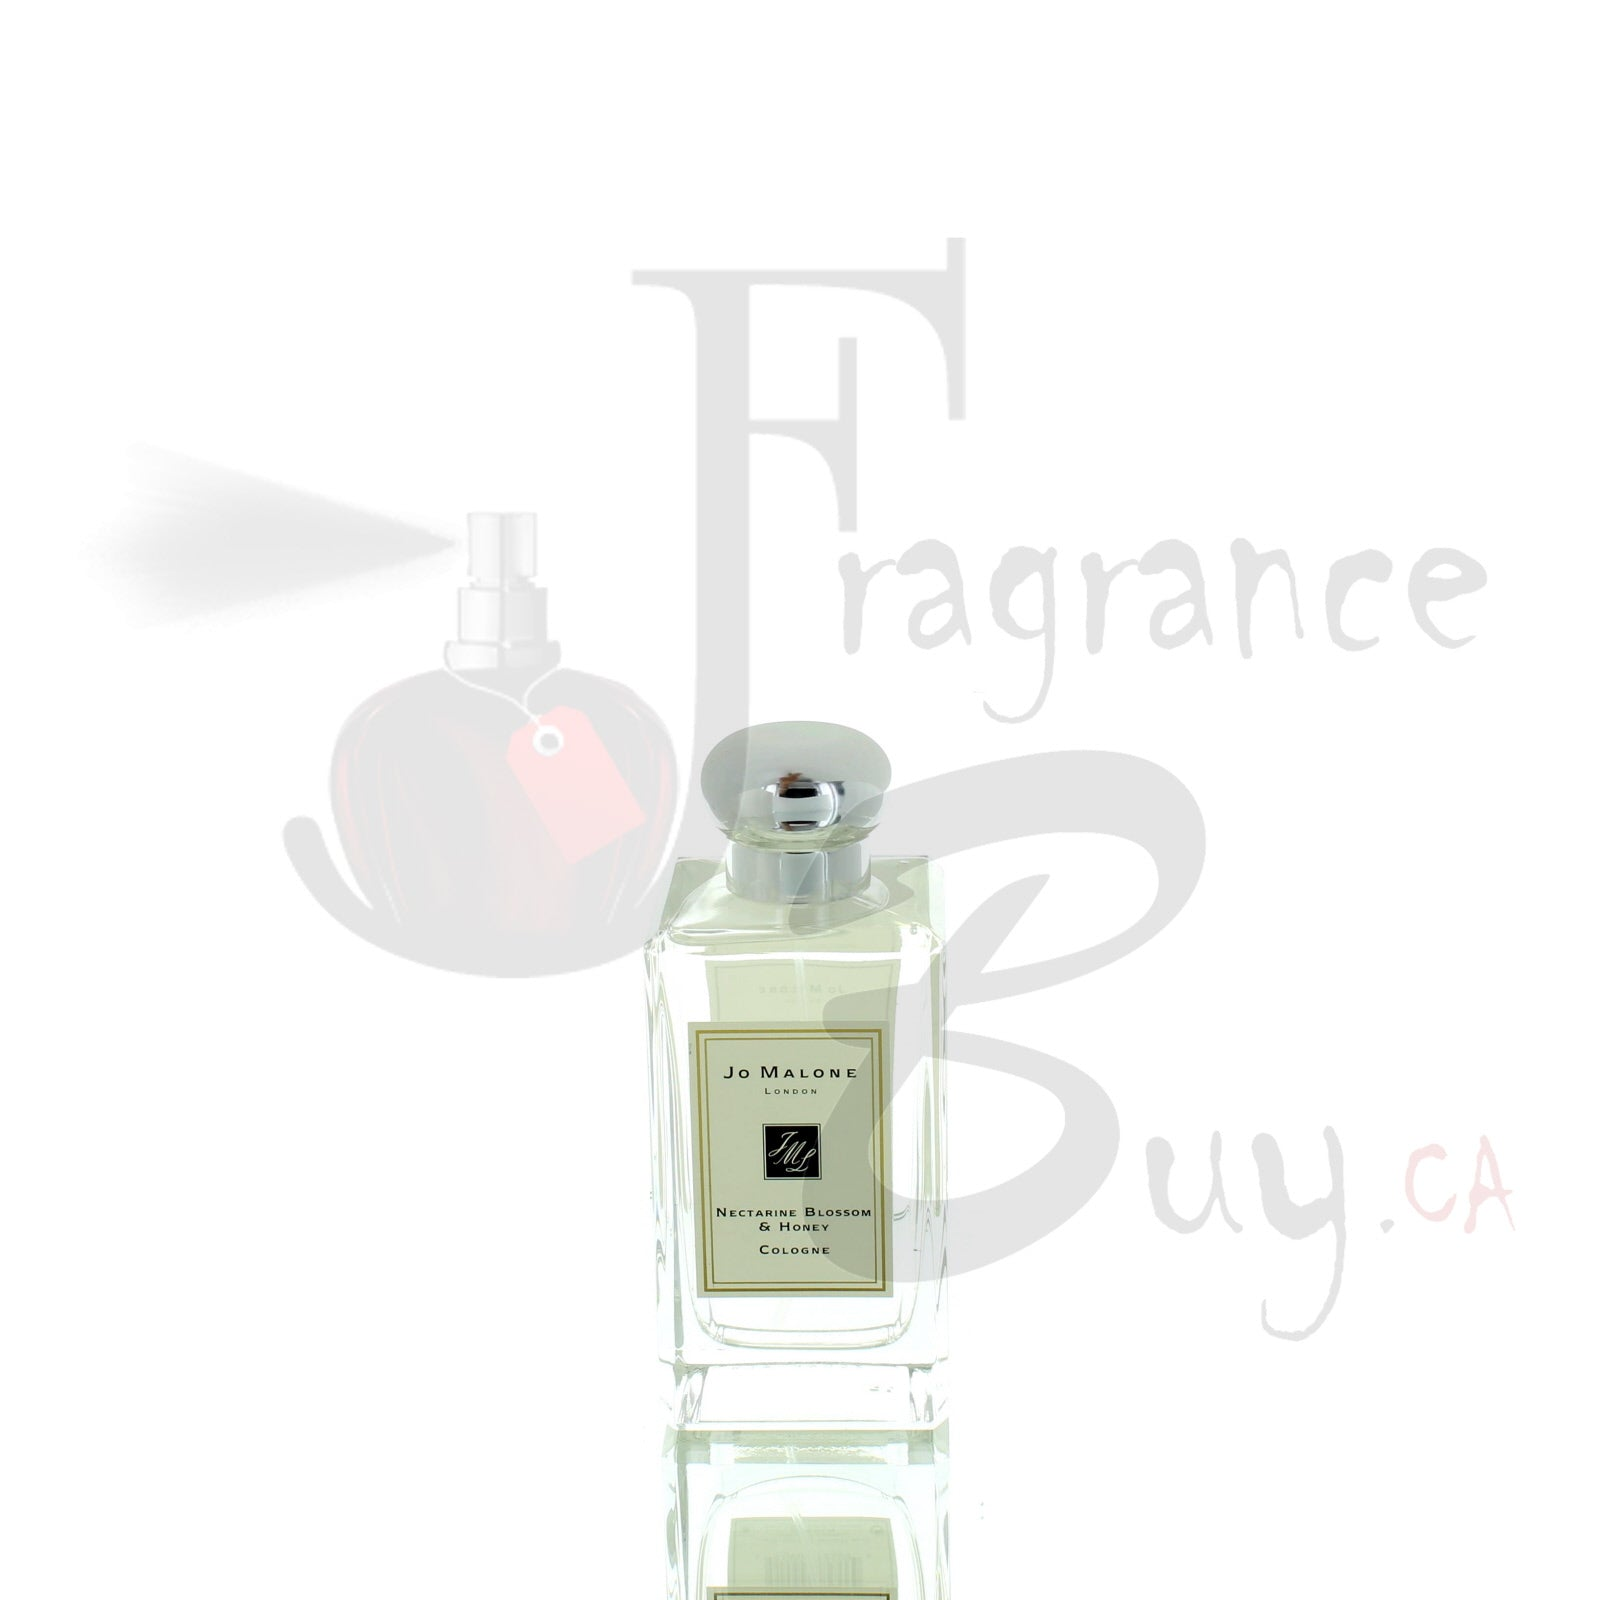 Jo Malone Nectarine Blossom And Honey For Man/Woman